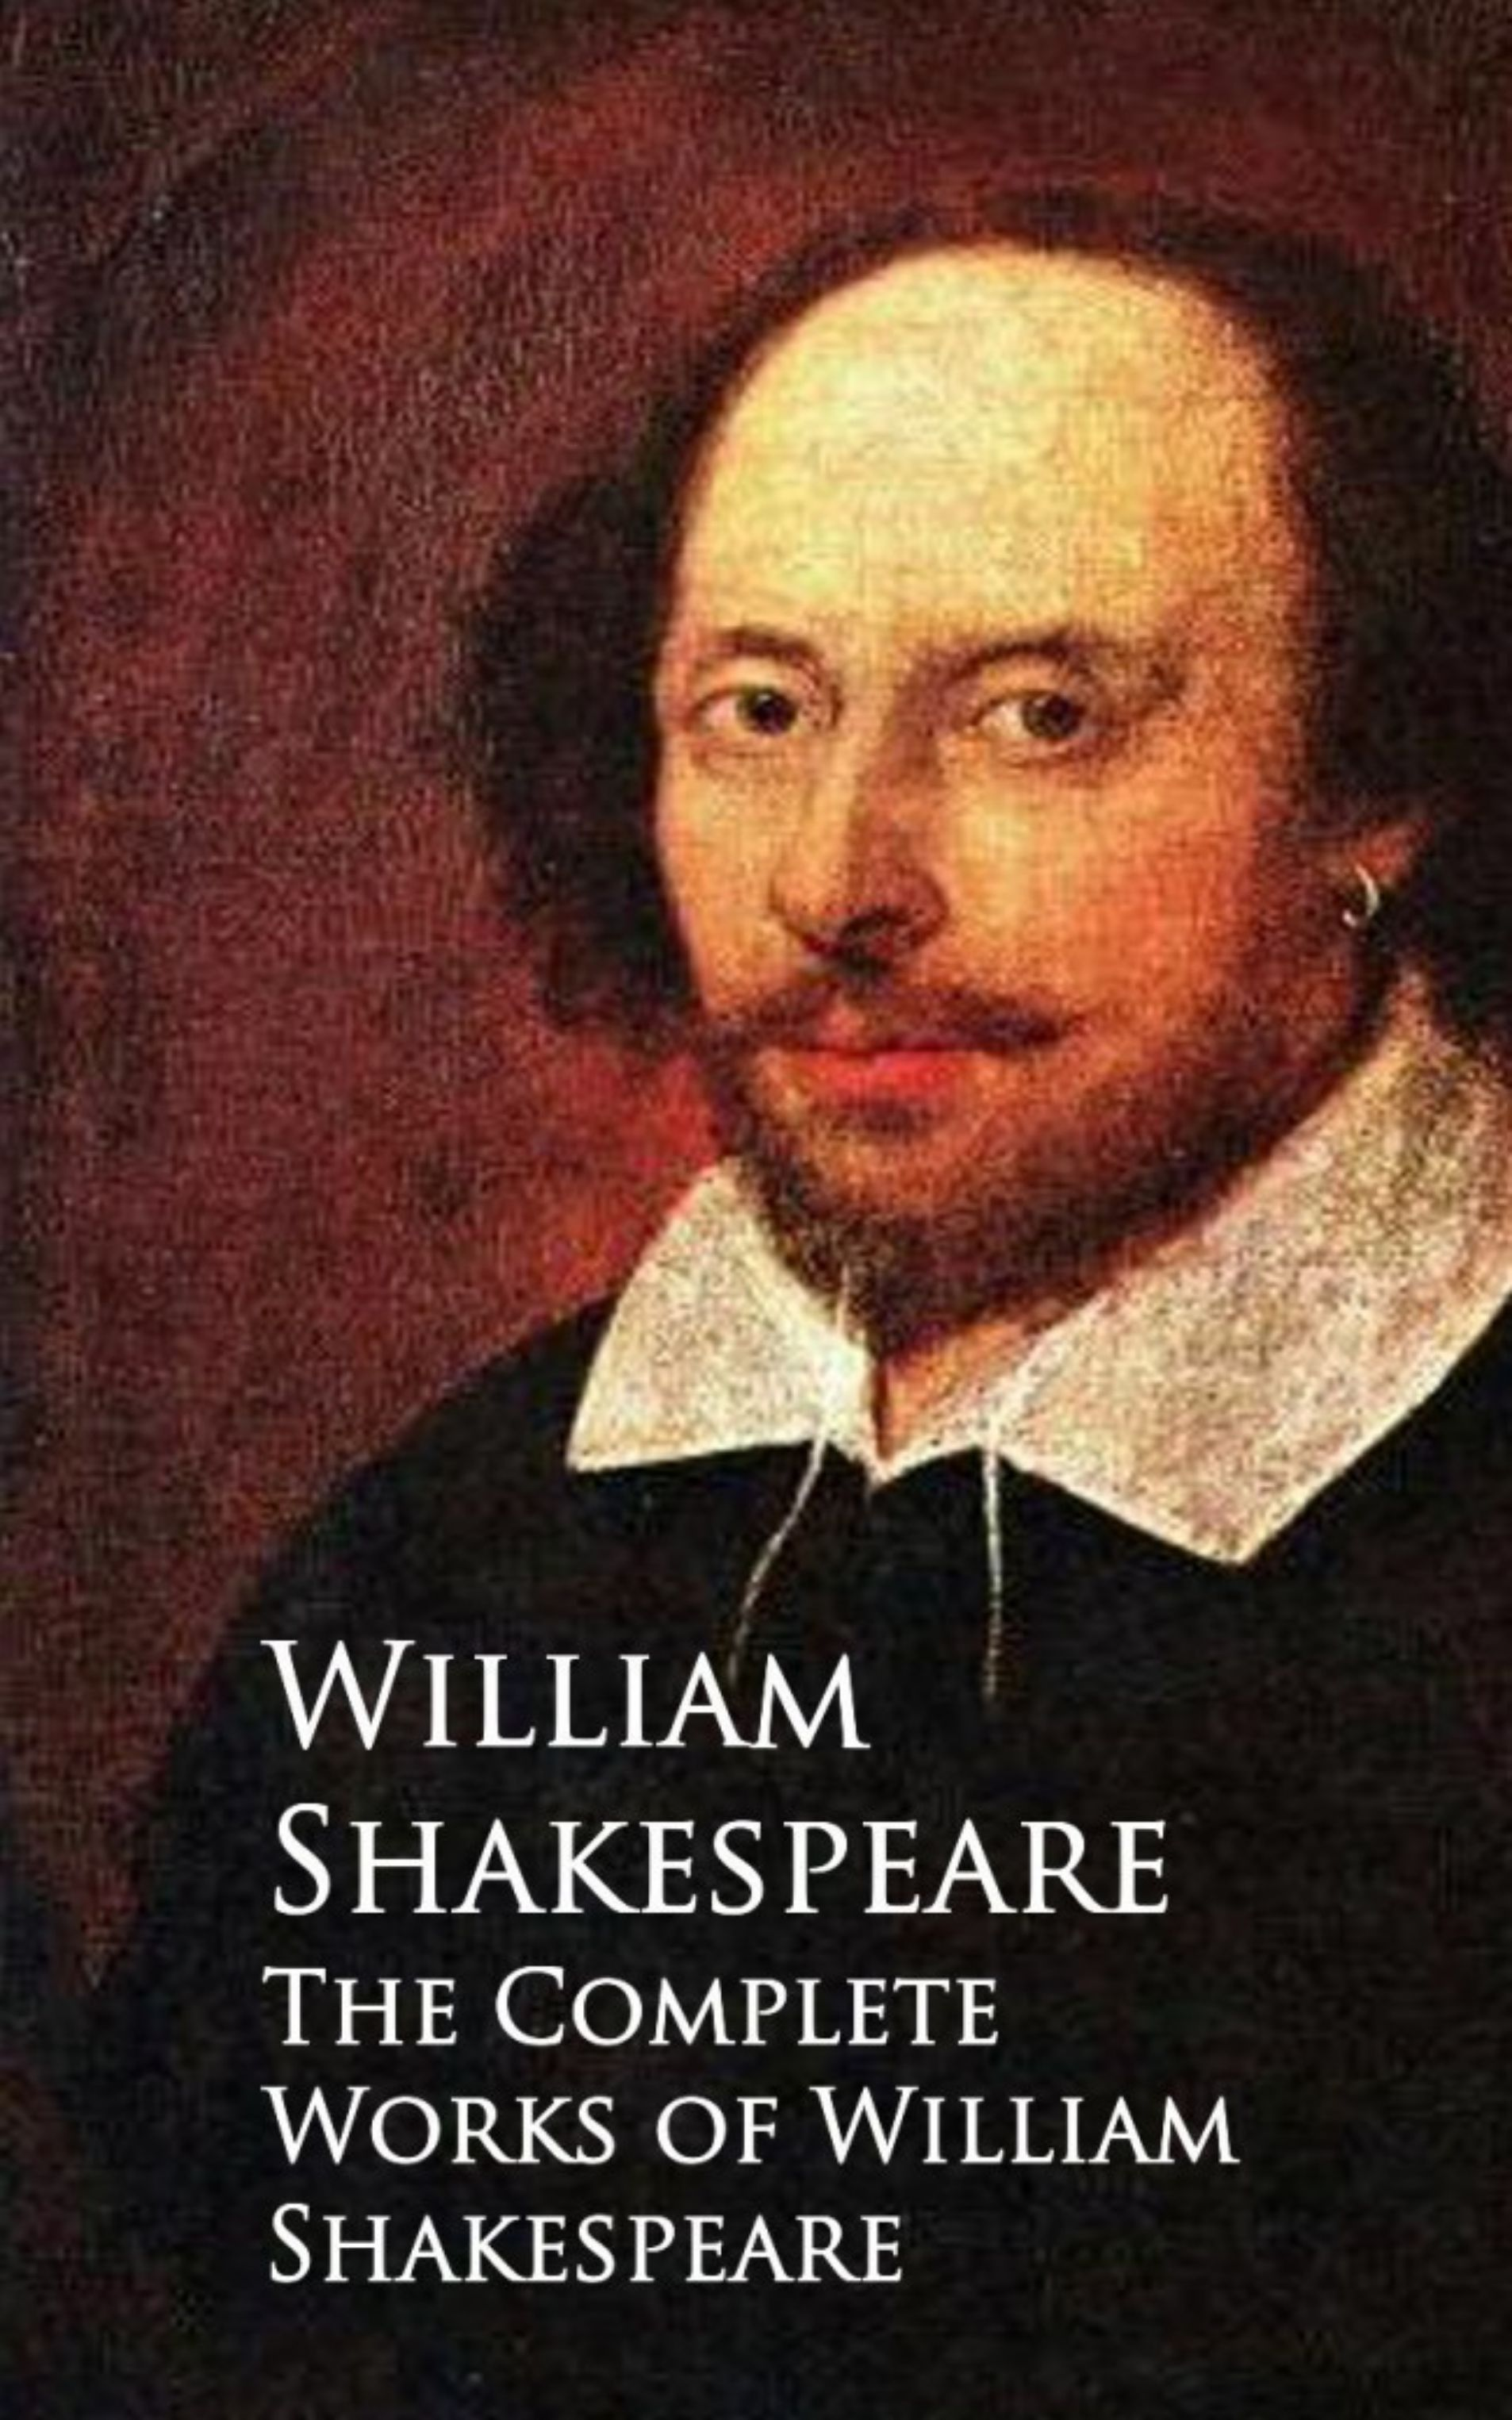 Уильям Шекспир The Complete Works of William Shakespeare the new oxford shakespeare modern critical edition the complete works